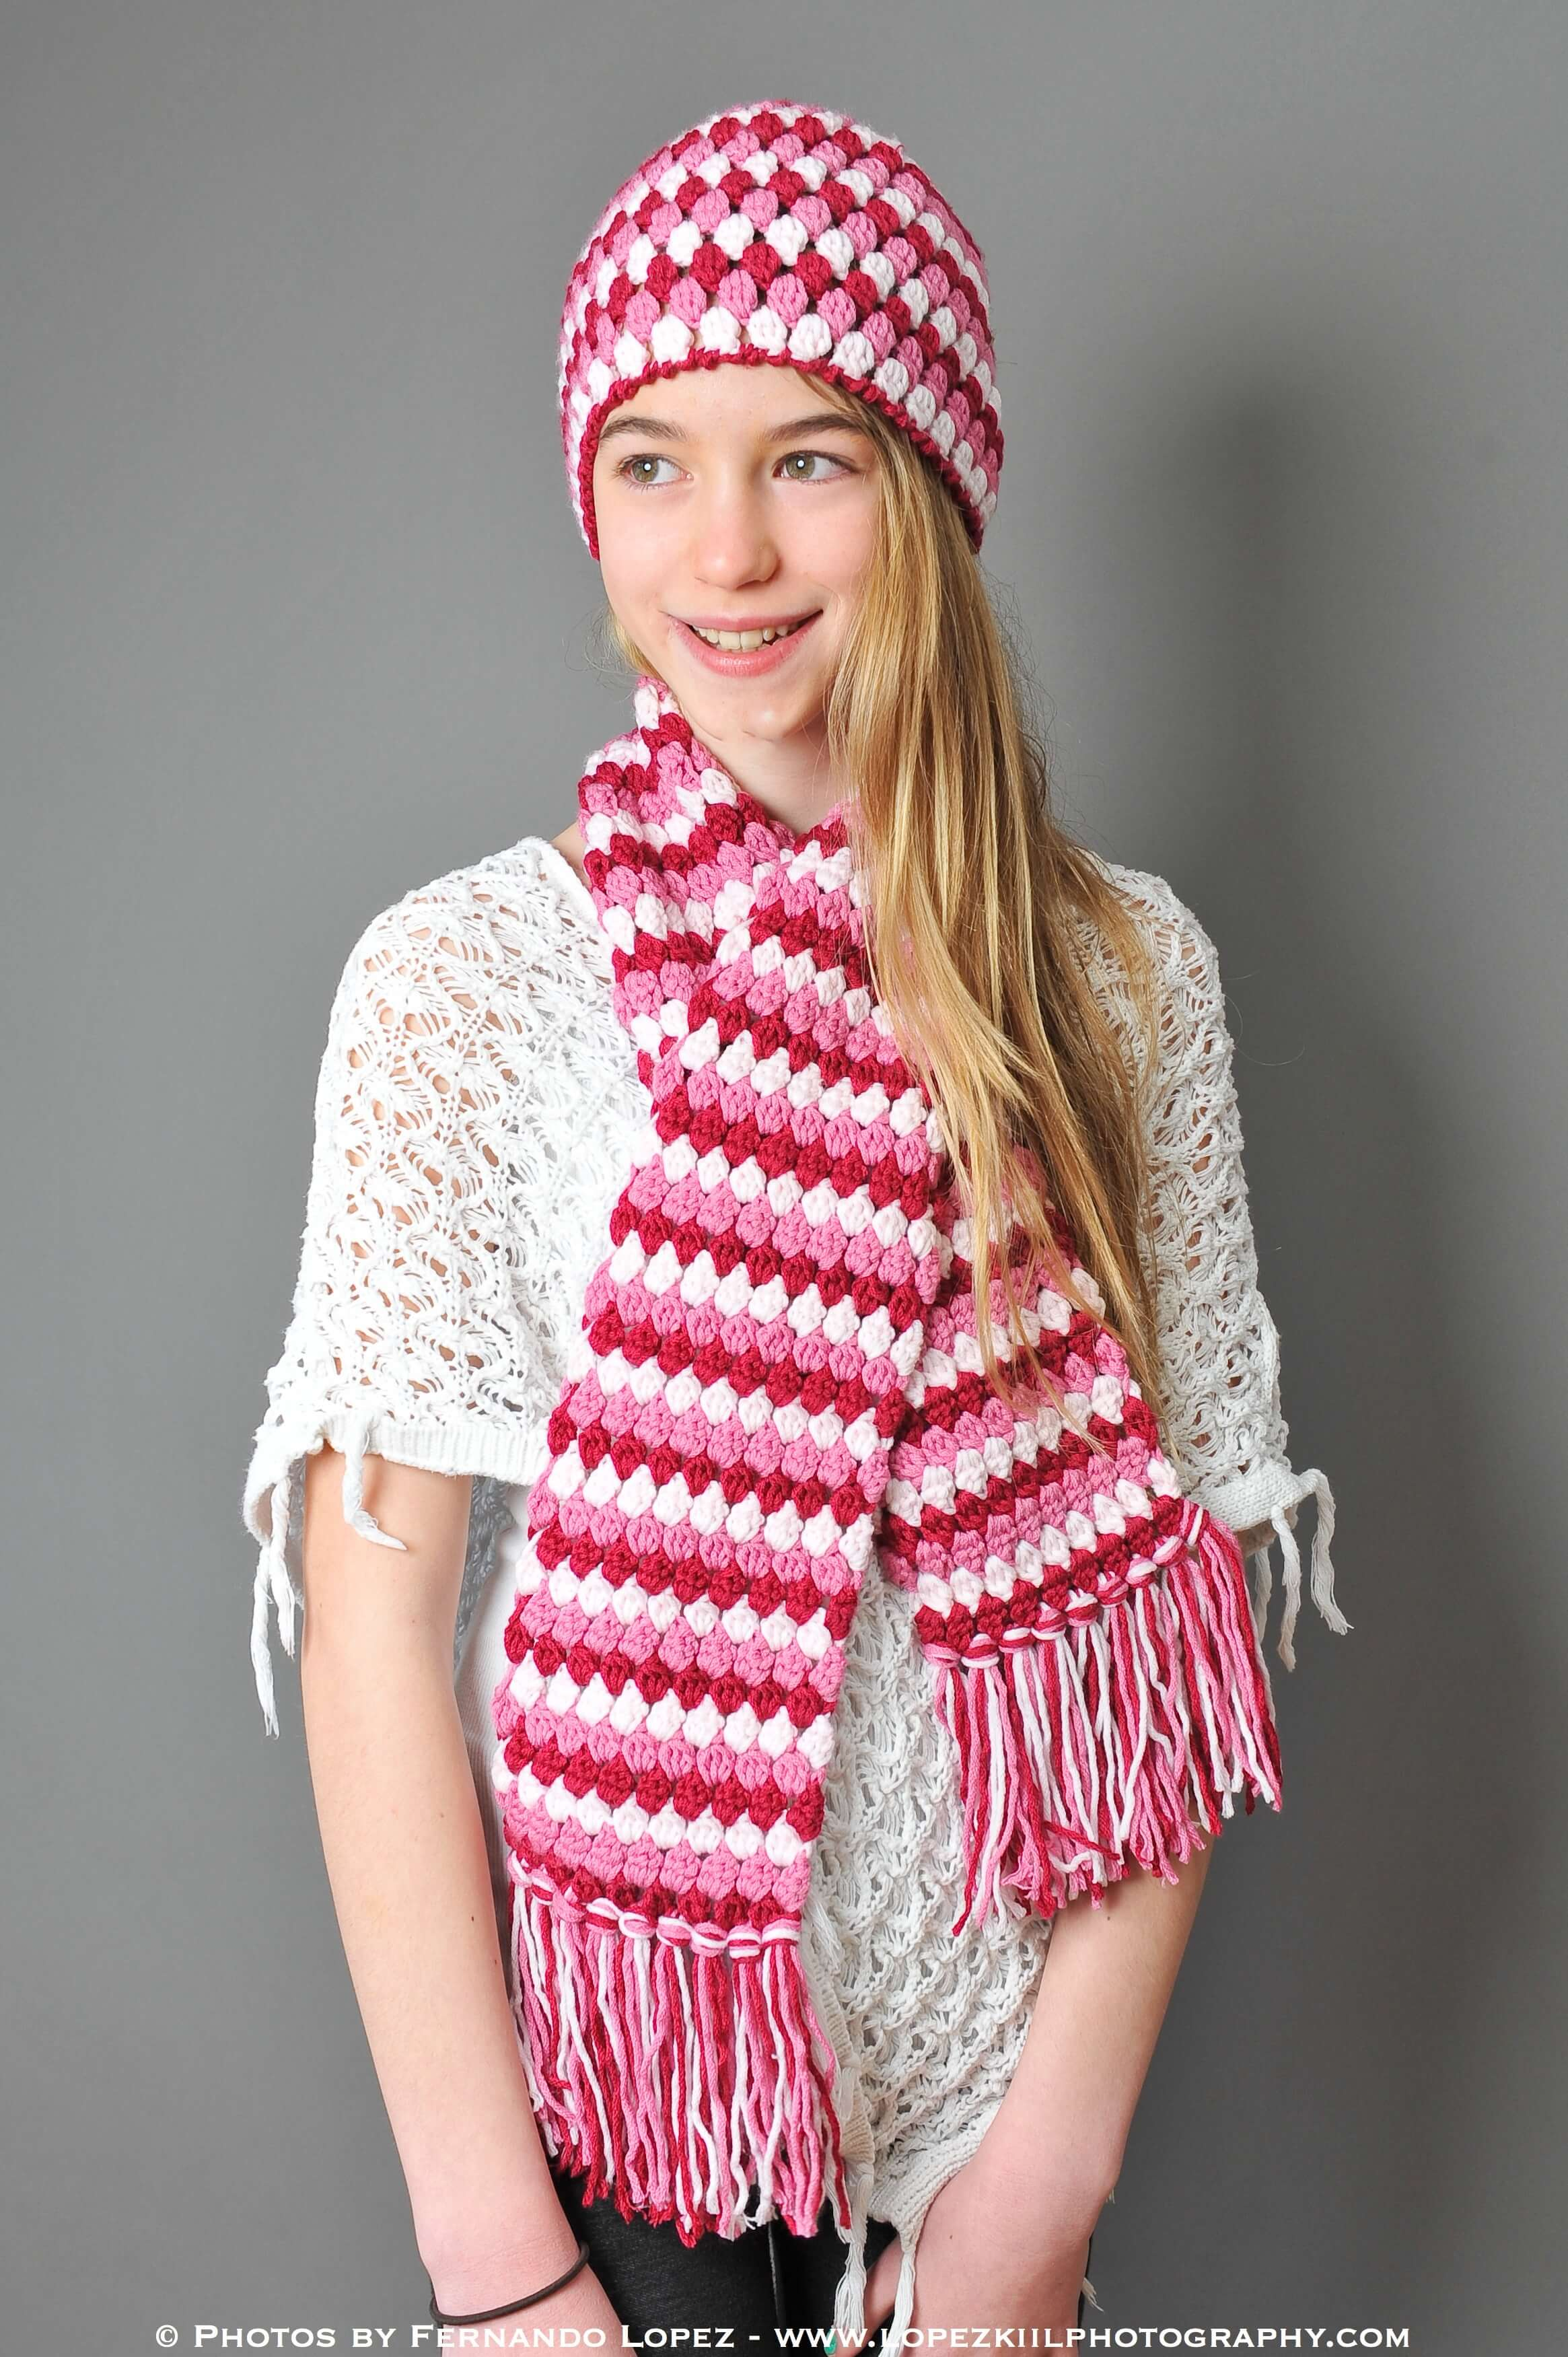 Select from Infinity Plaid Scarf & Beanie Set, Long Plaid Scarf or Bienvenu Women Lady Winter Warm Knitted Snowflake Hat Gloves and Scarf Winter Set. by Bienvenu. $ - $ $ 10 $ 16 99 Prime. FREE Shipping on eligible orders. Some colors are Prime eligible. out of 5 stars